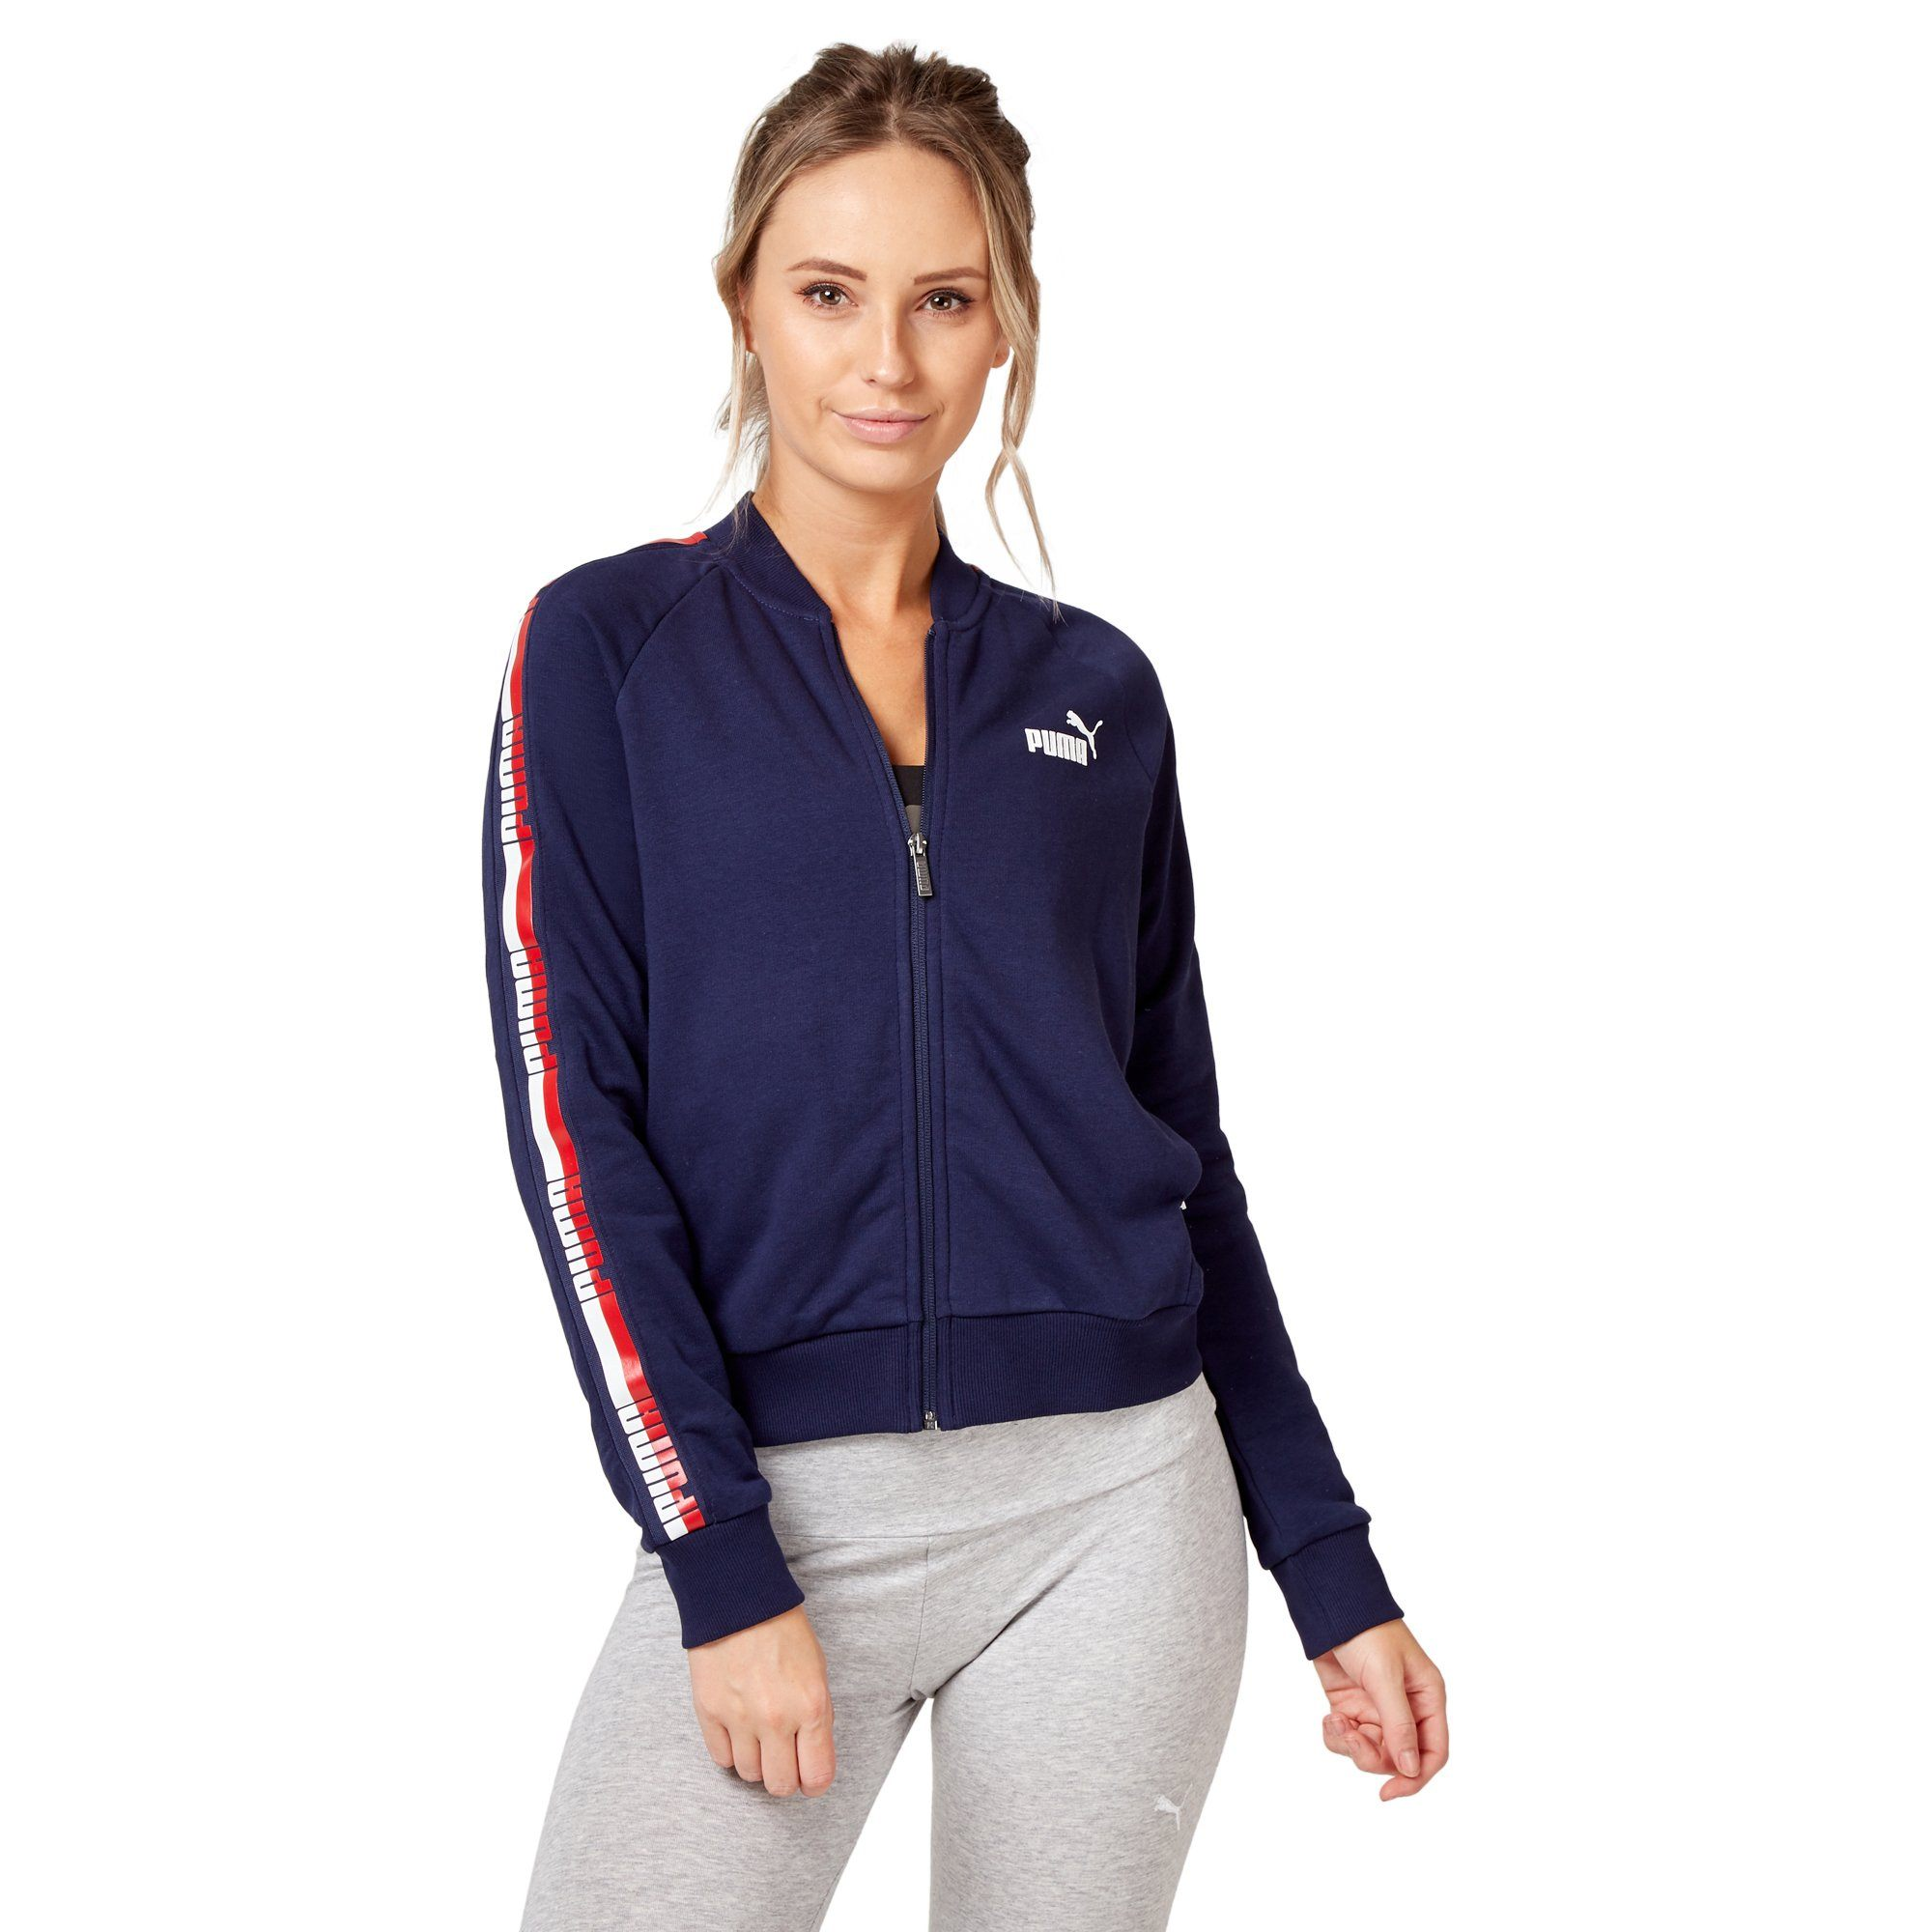 Puma Women's Tape Fleece Jacket - Peacoat Apparel Puma